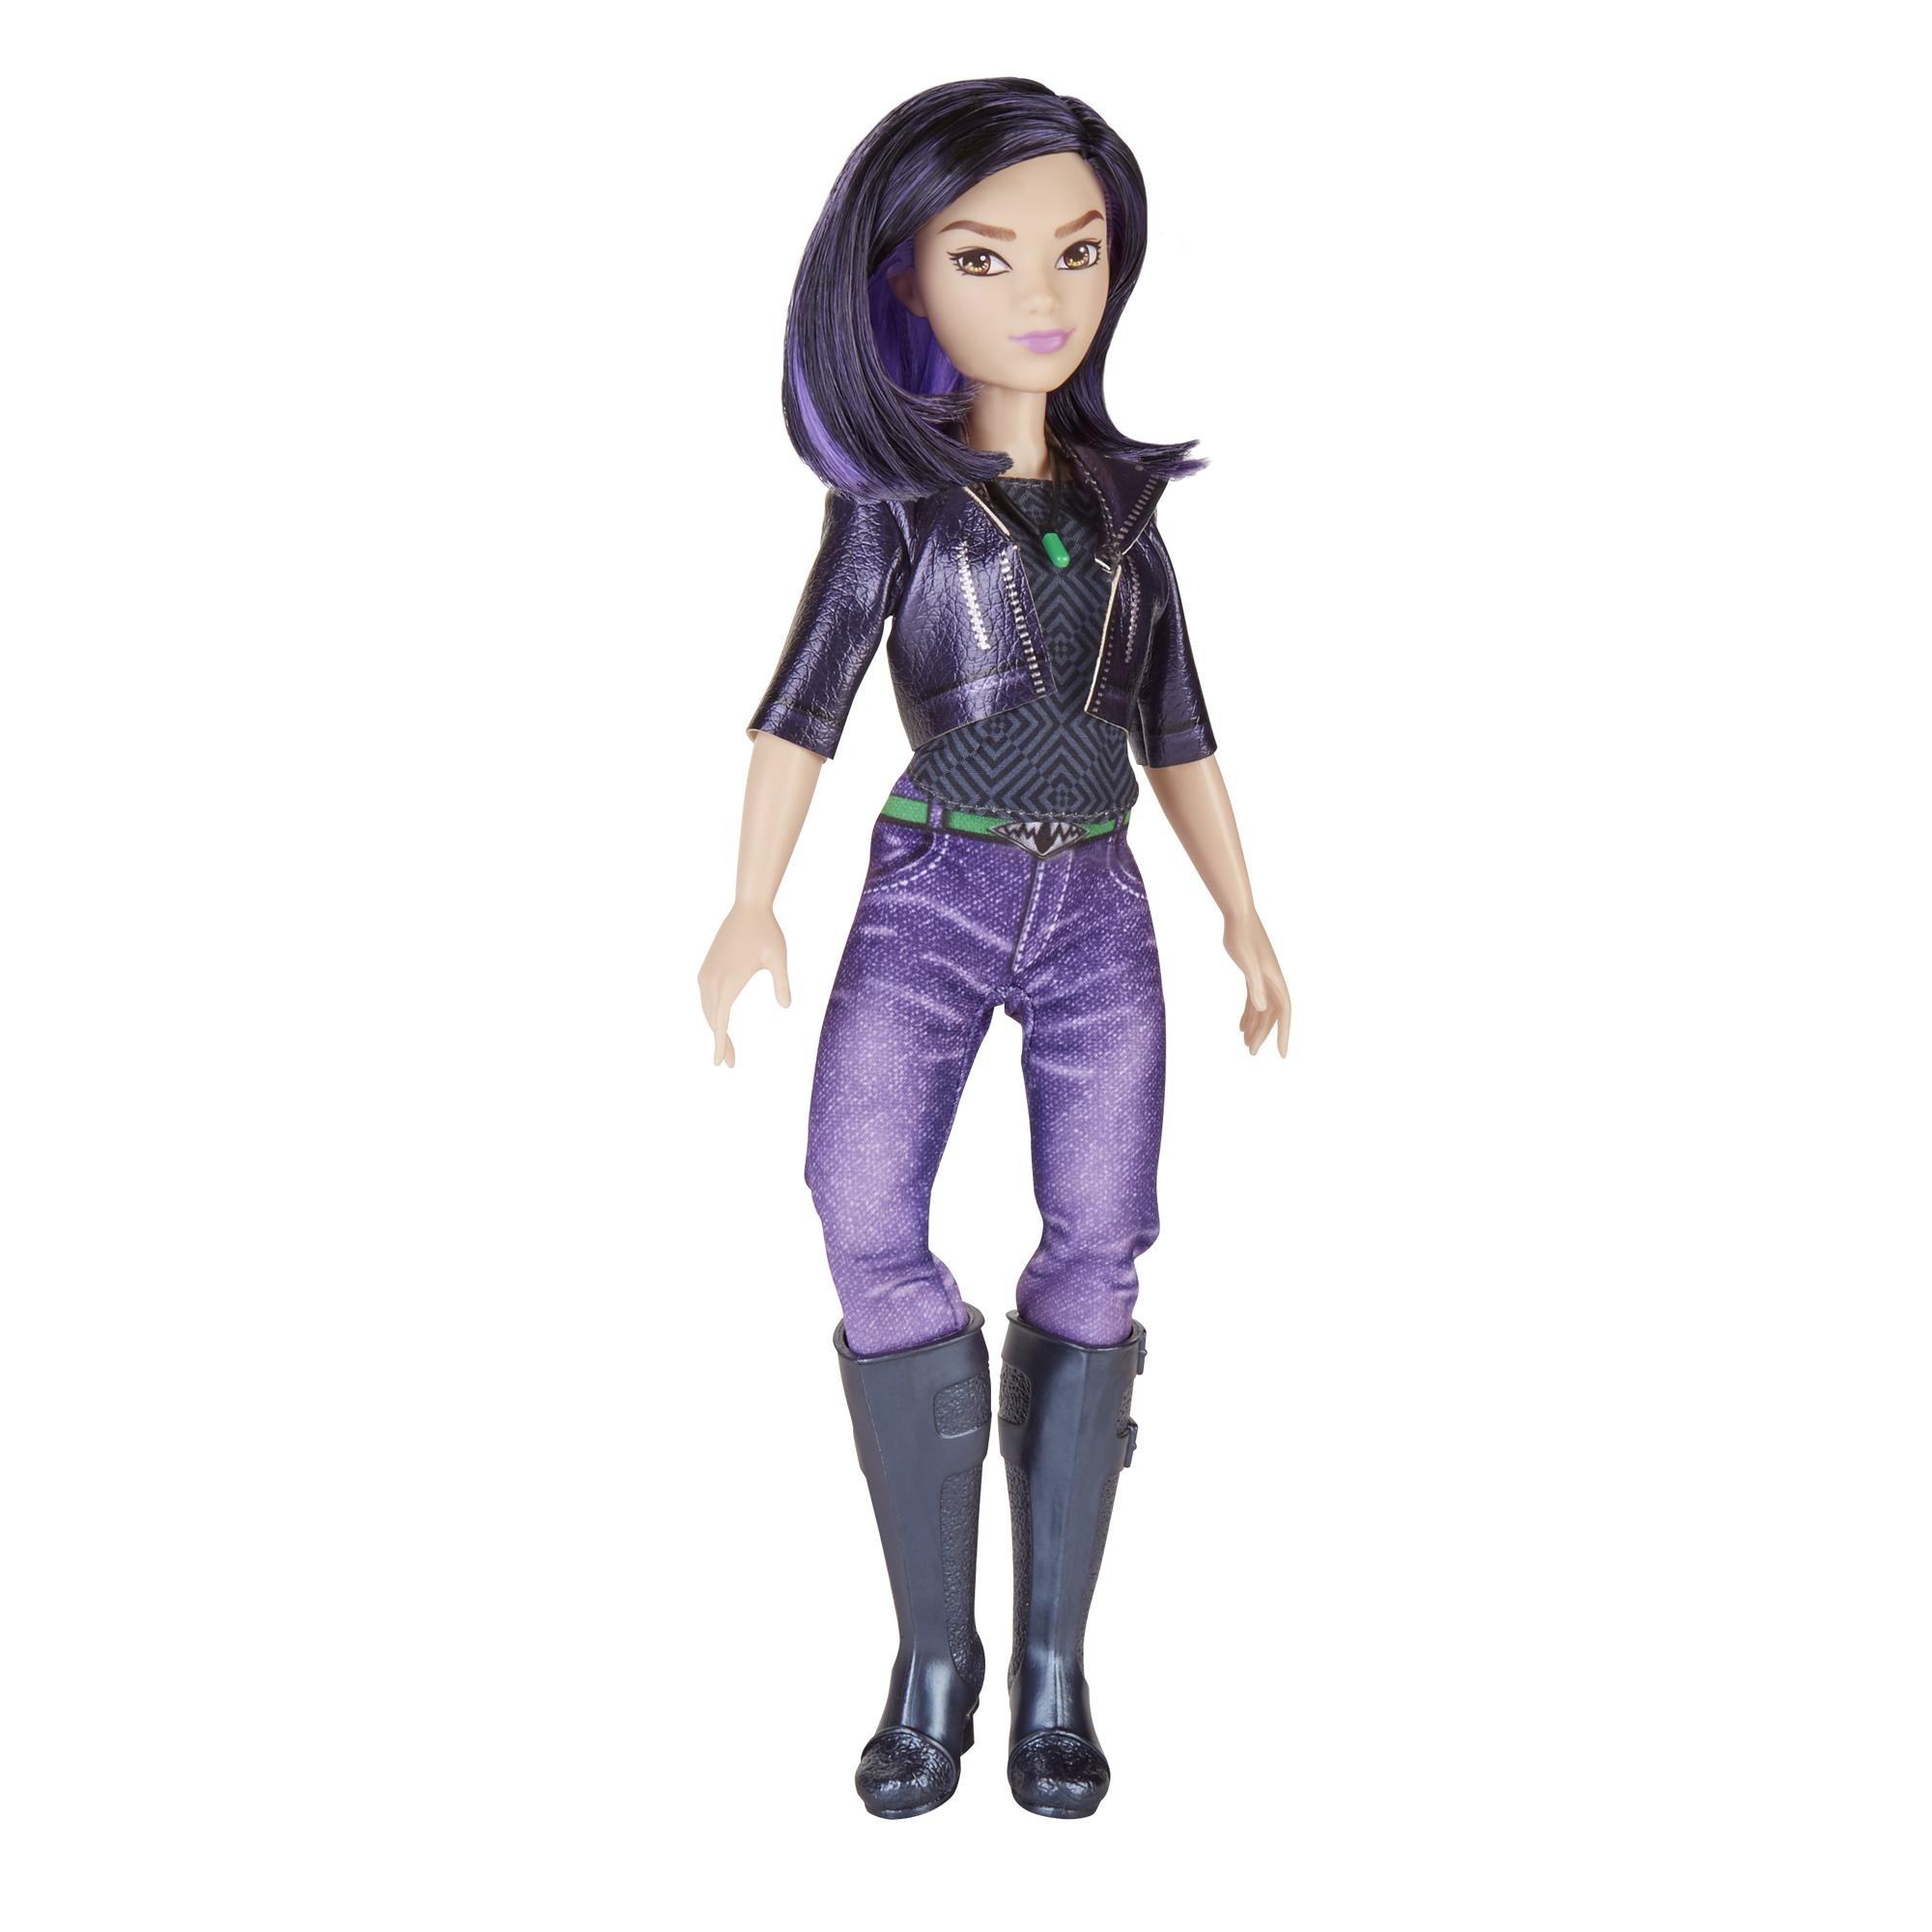 Marvel Rising Daisy Johnson (Marvel's Quake) Secret Identity Doll